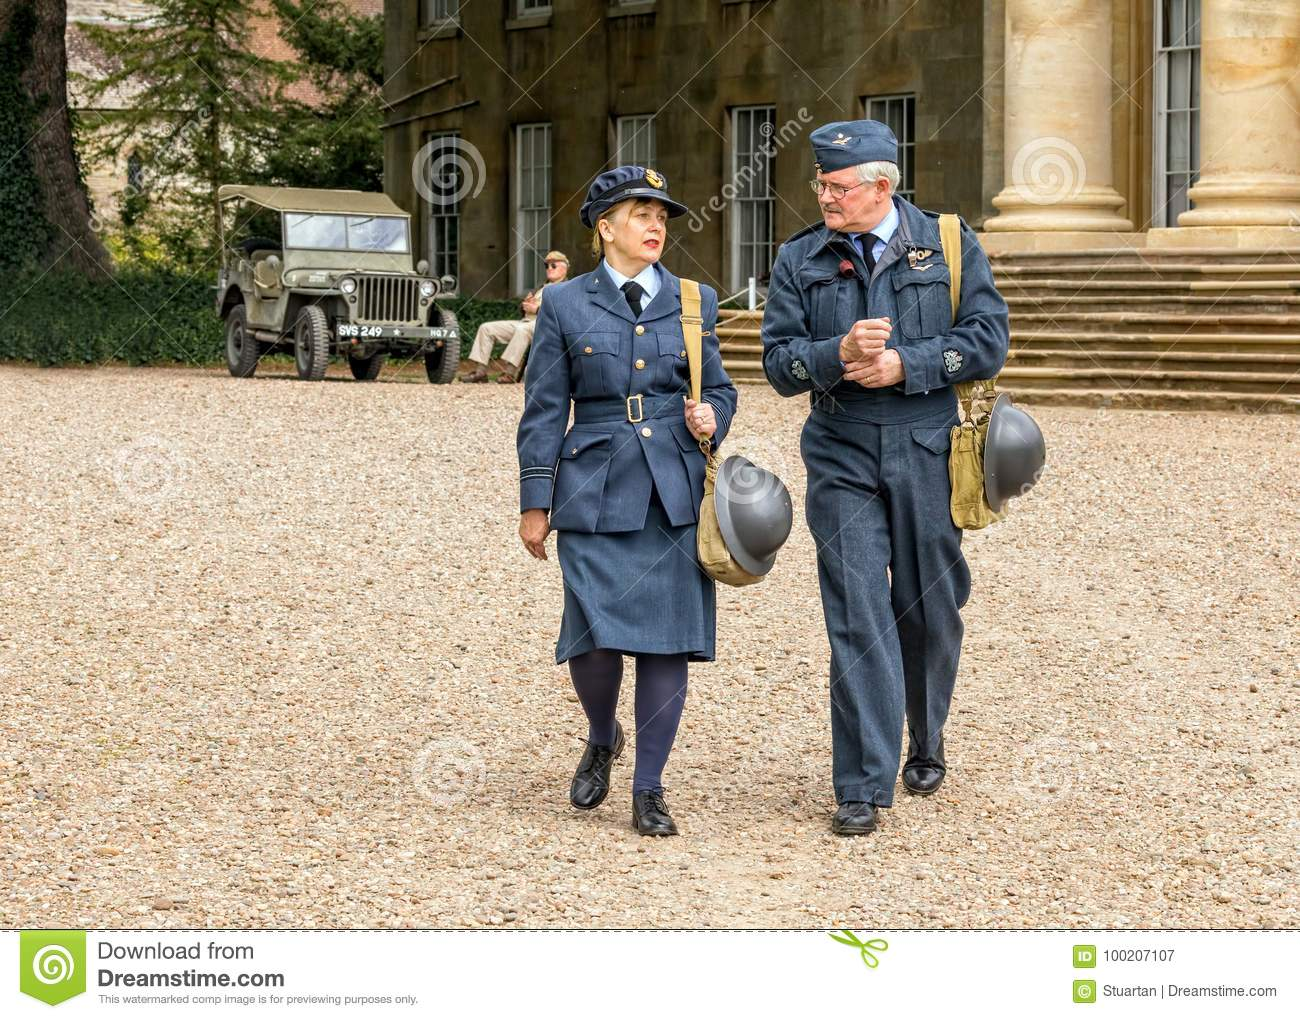 c0393777de5 Re-enactors dressed in WW2 uniforms of a Flight Officer in the Women`s  Auxiliary Air Force and the male as a Royal Air Force Observer with the  rank of ...